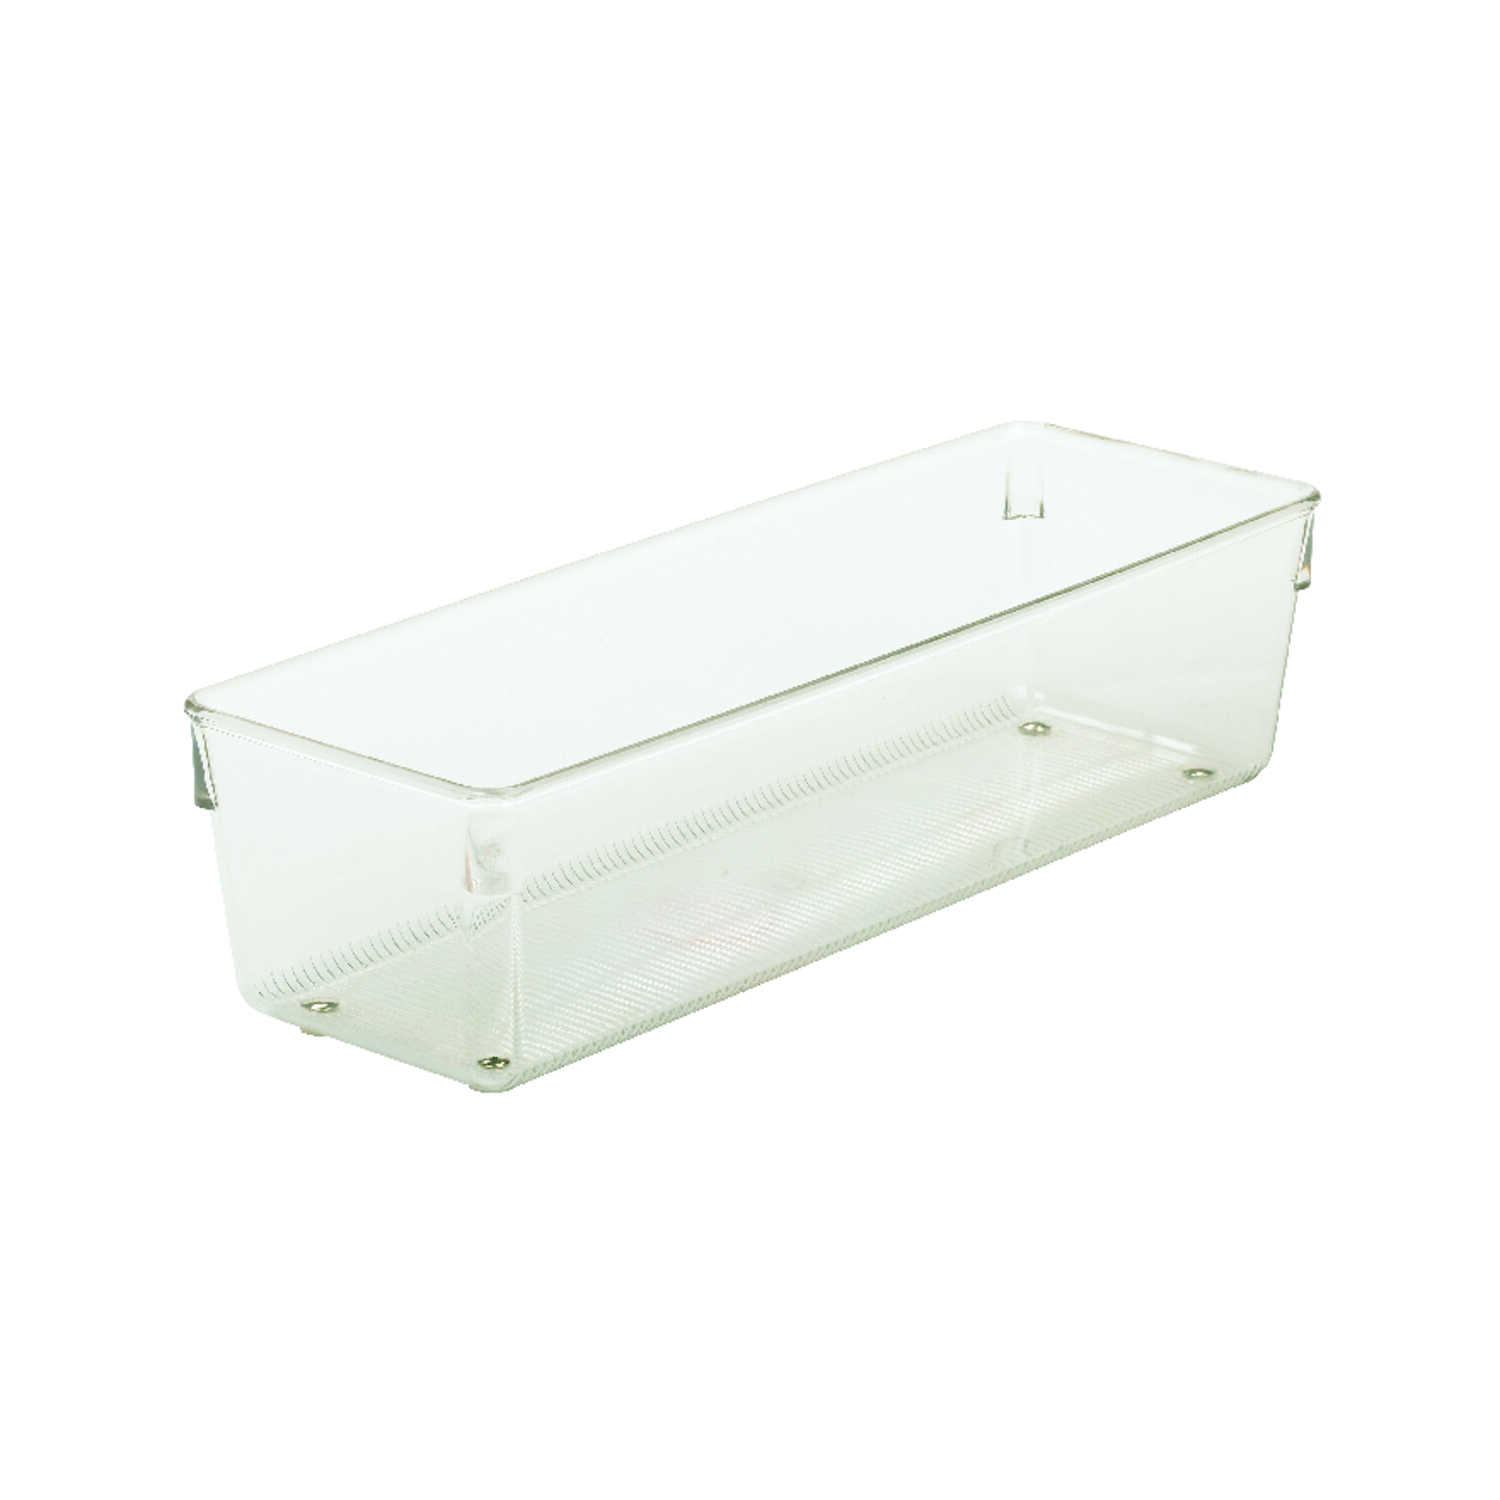 InterDesign  3 in. H x 4 in. W x 12 in. L Clear  Plastic  Drawer Organizer